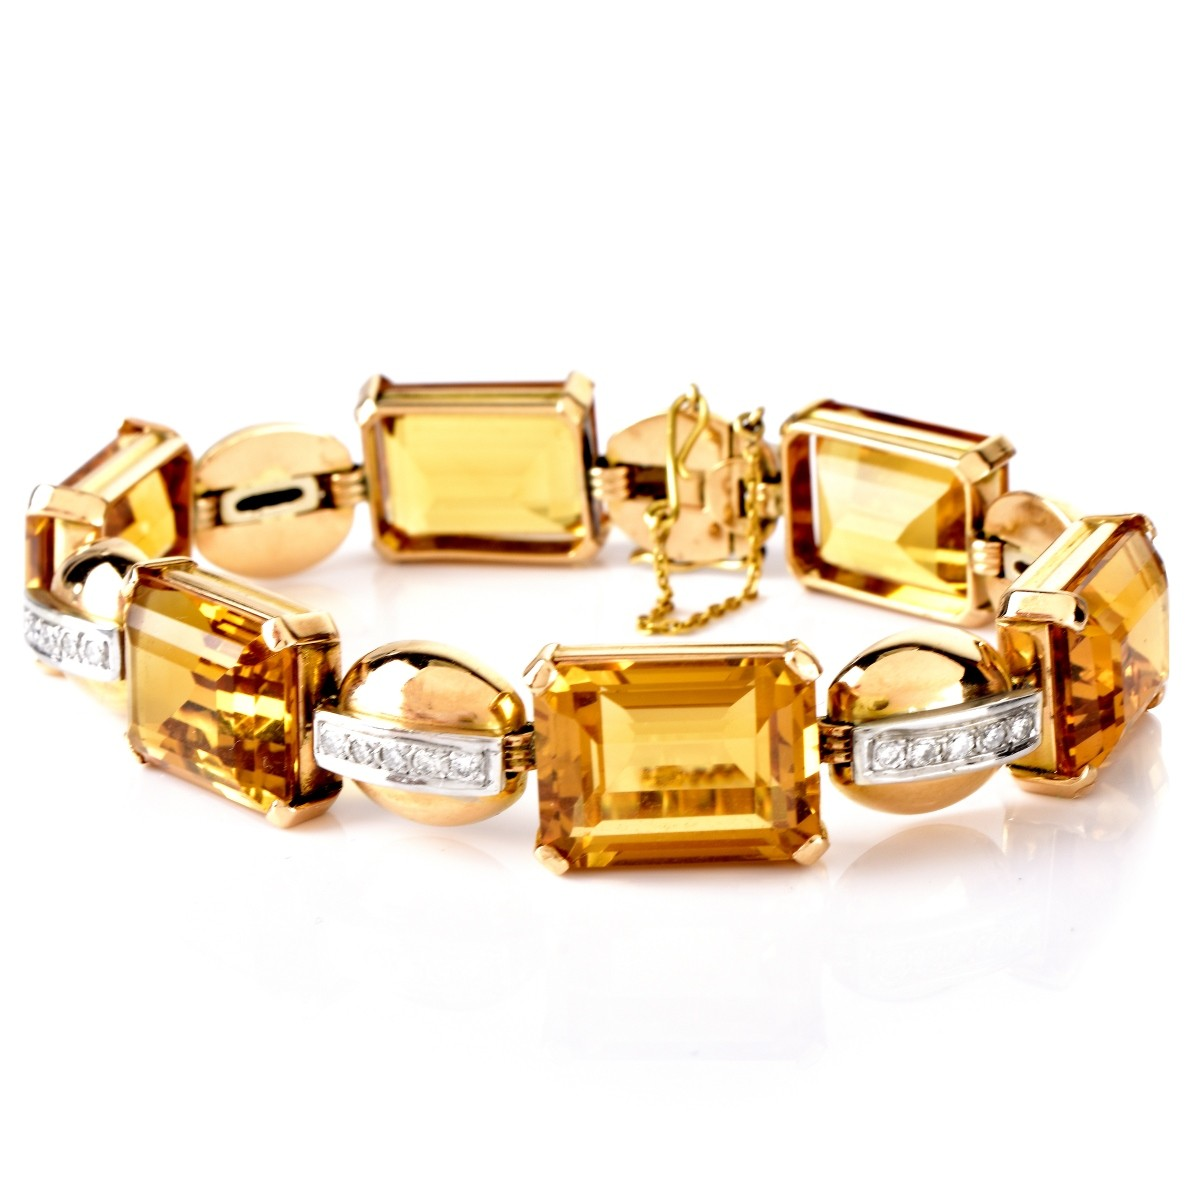 Vintage Topaz, Diamond and 14K Gold Bracelet